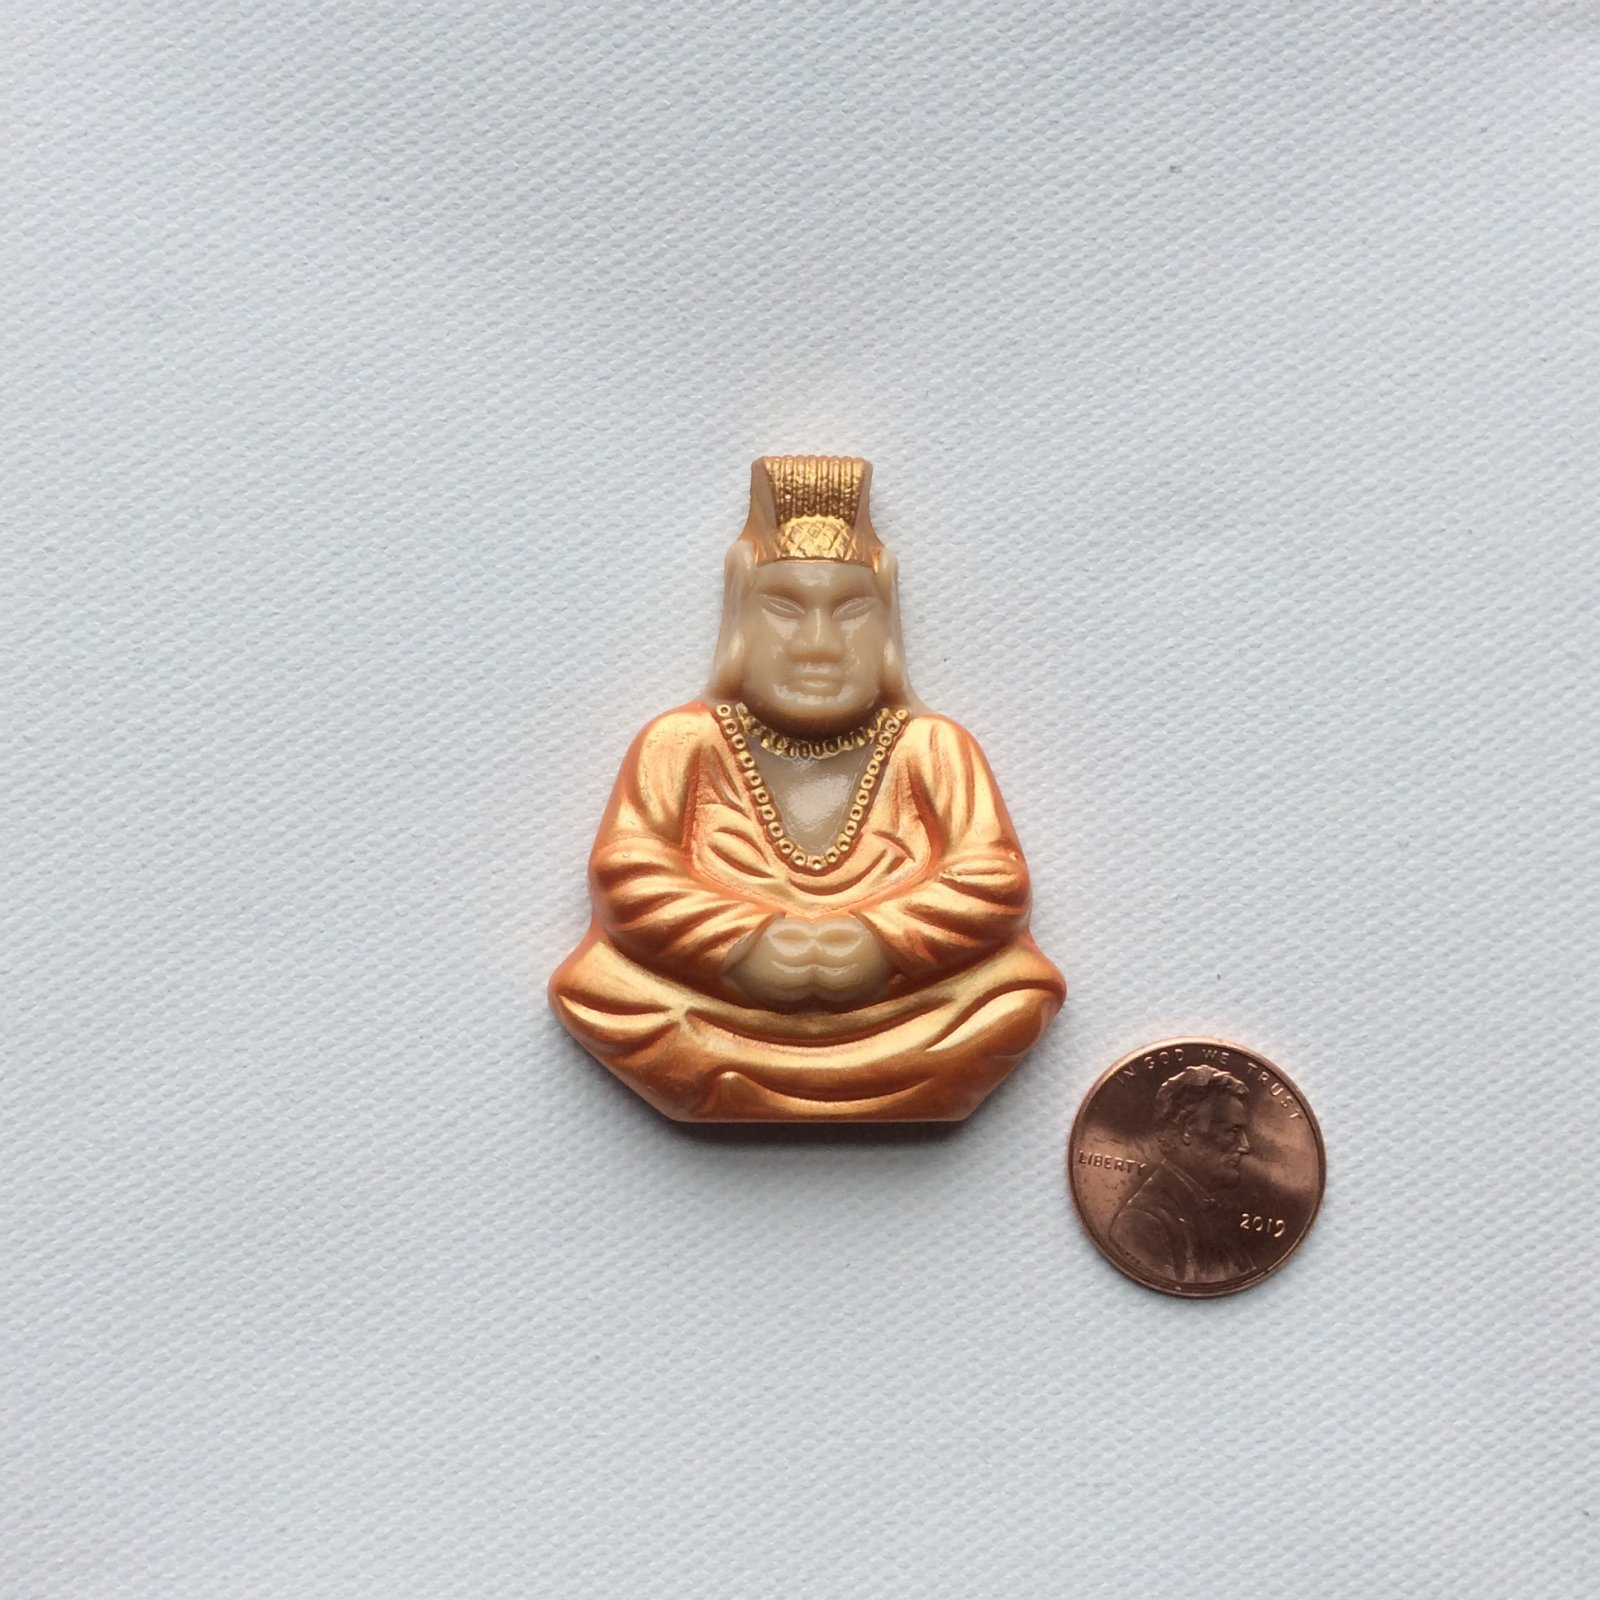 Bohemian Glass Extra Large Seated Buddha Bright Sewing Button Iridescent Hand Painted Glass WX09